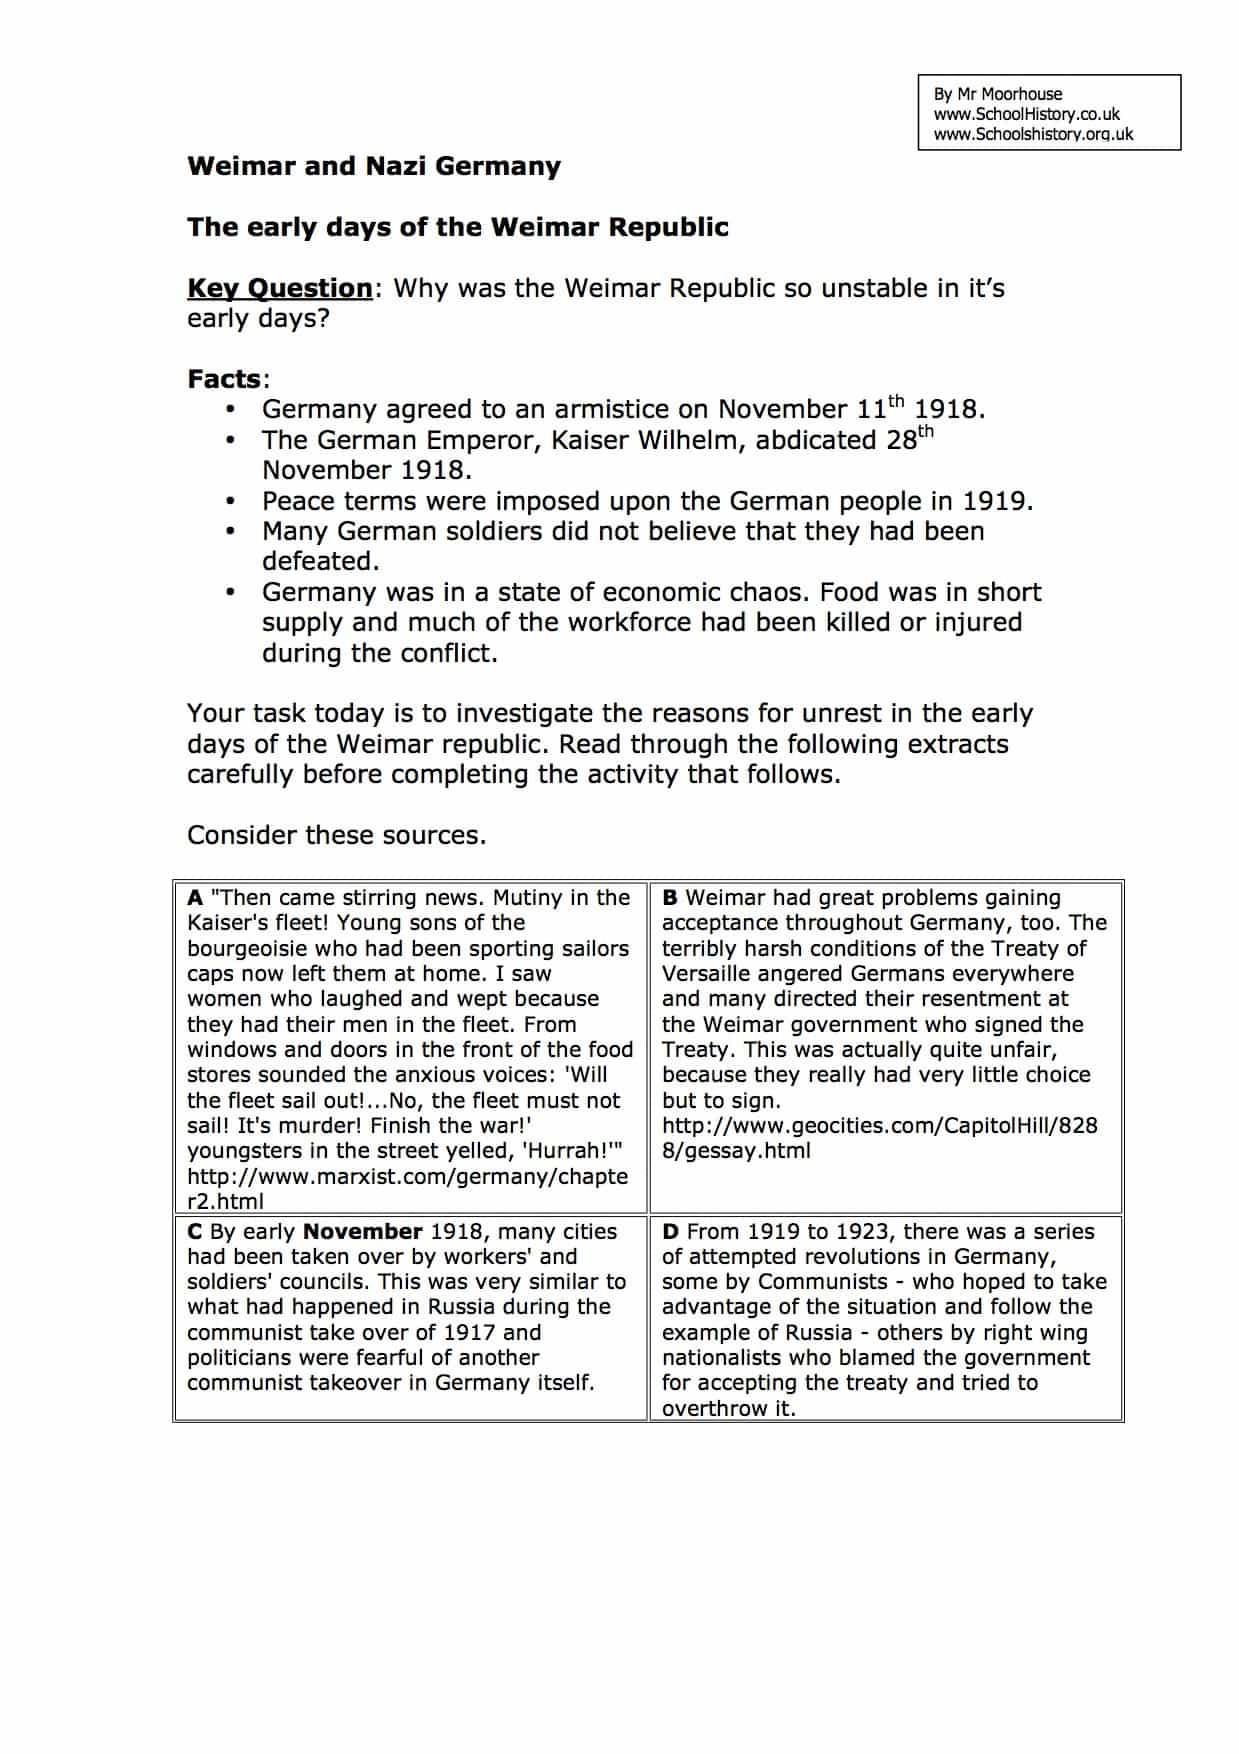 Early Days of the Weimar Republic Worksheet | GCSE Level